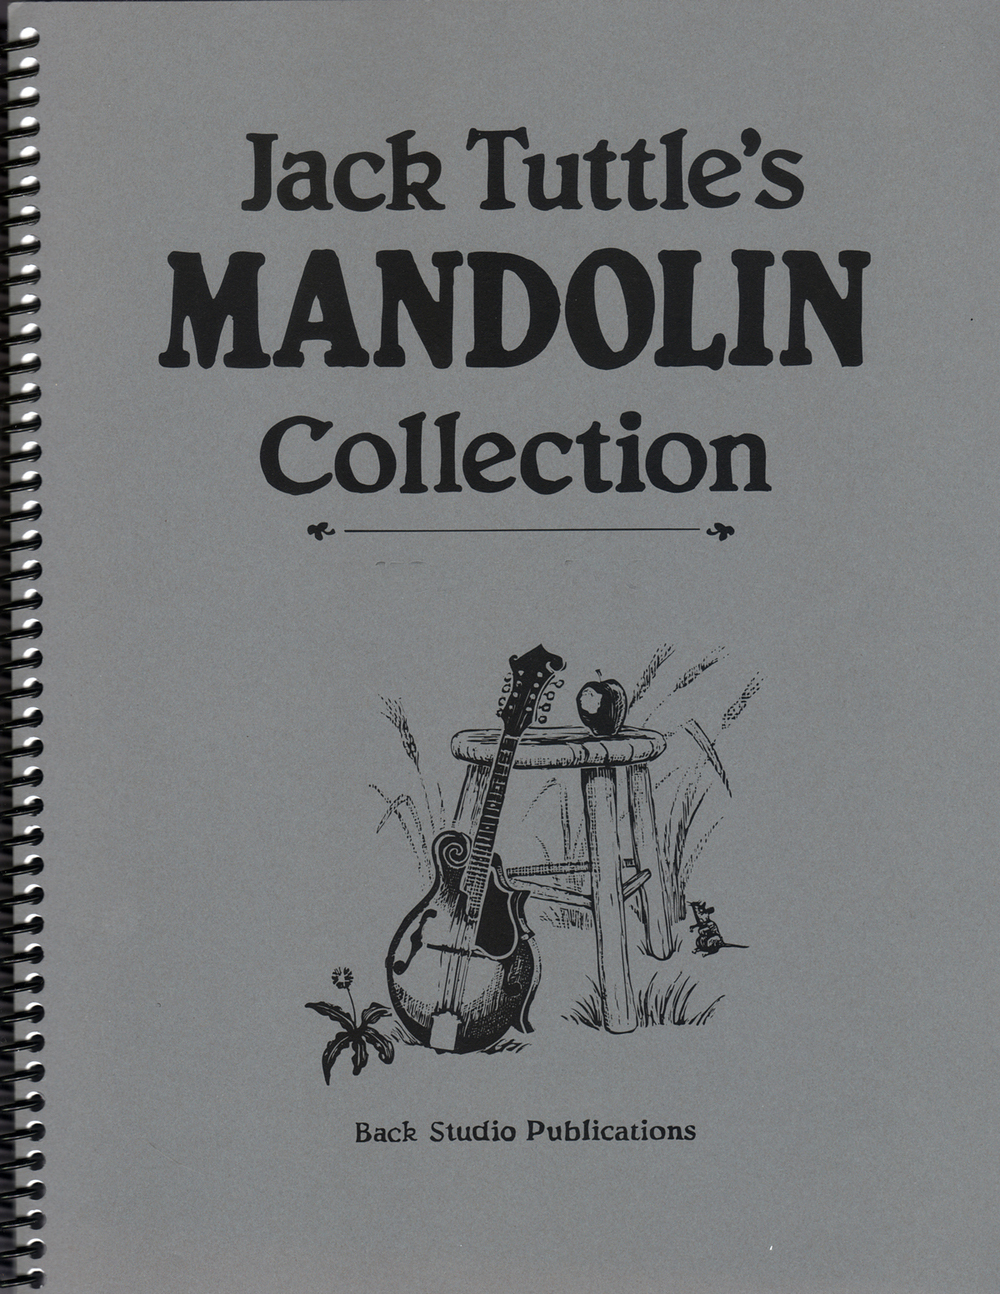 Jack Tuttle's Mandolin Collection